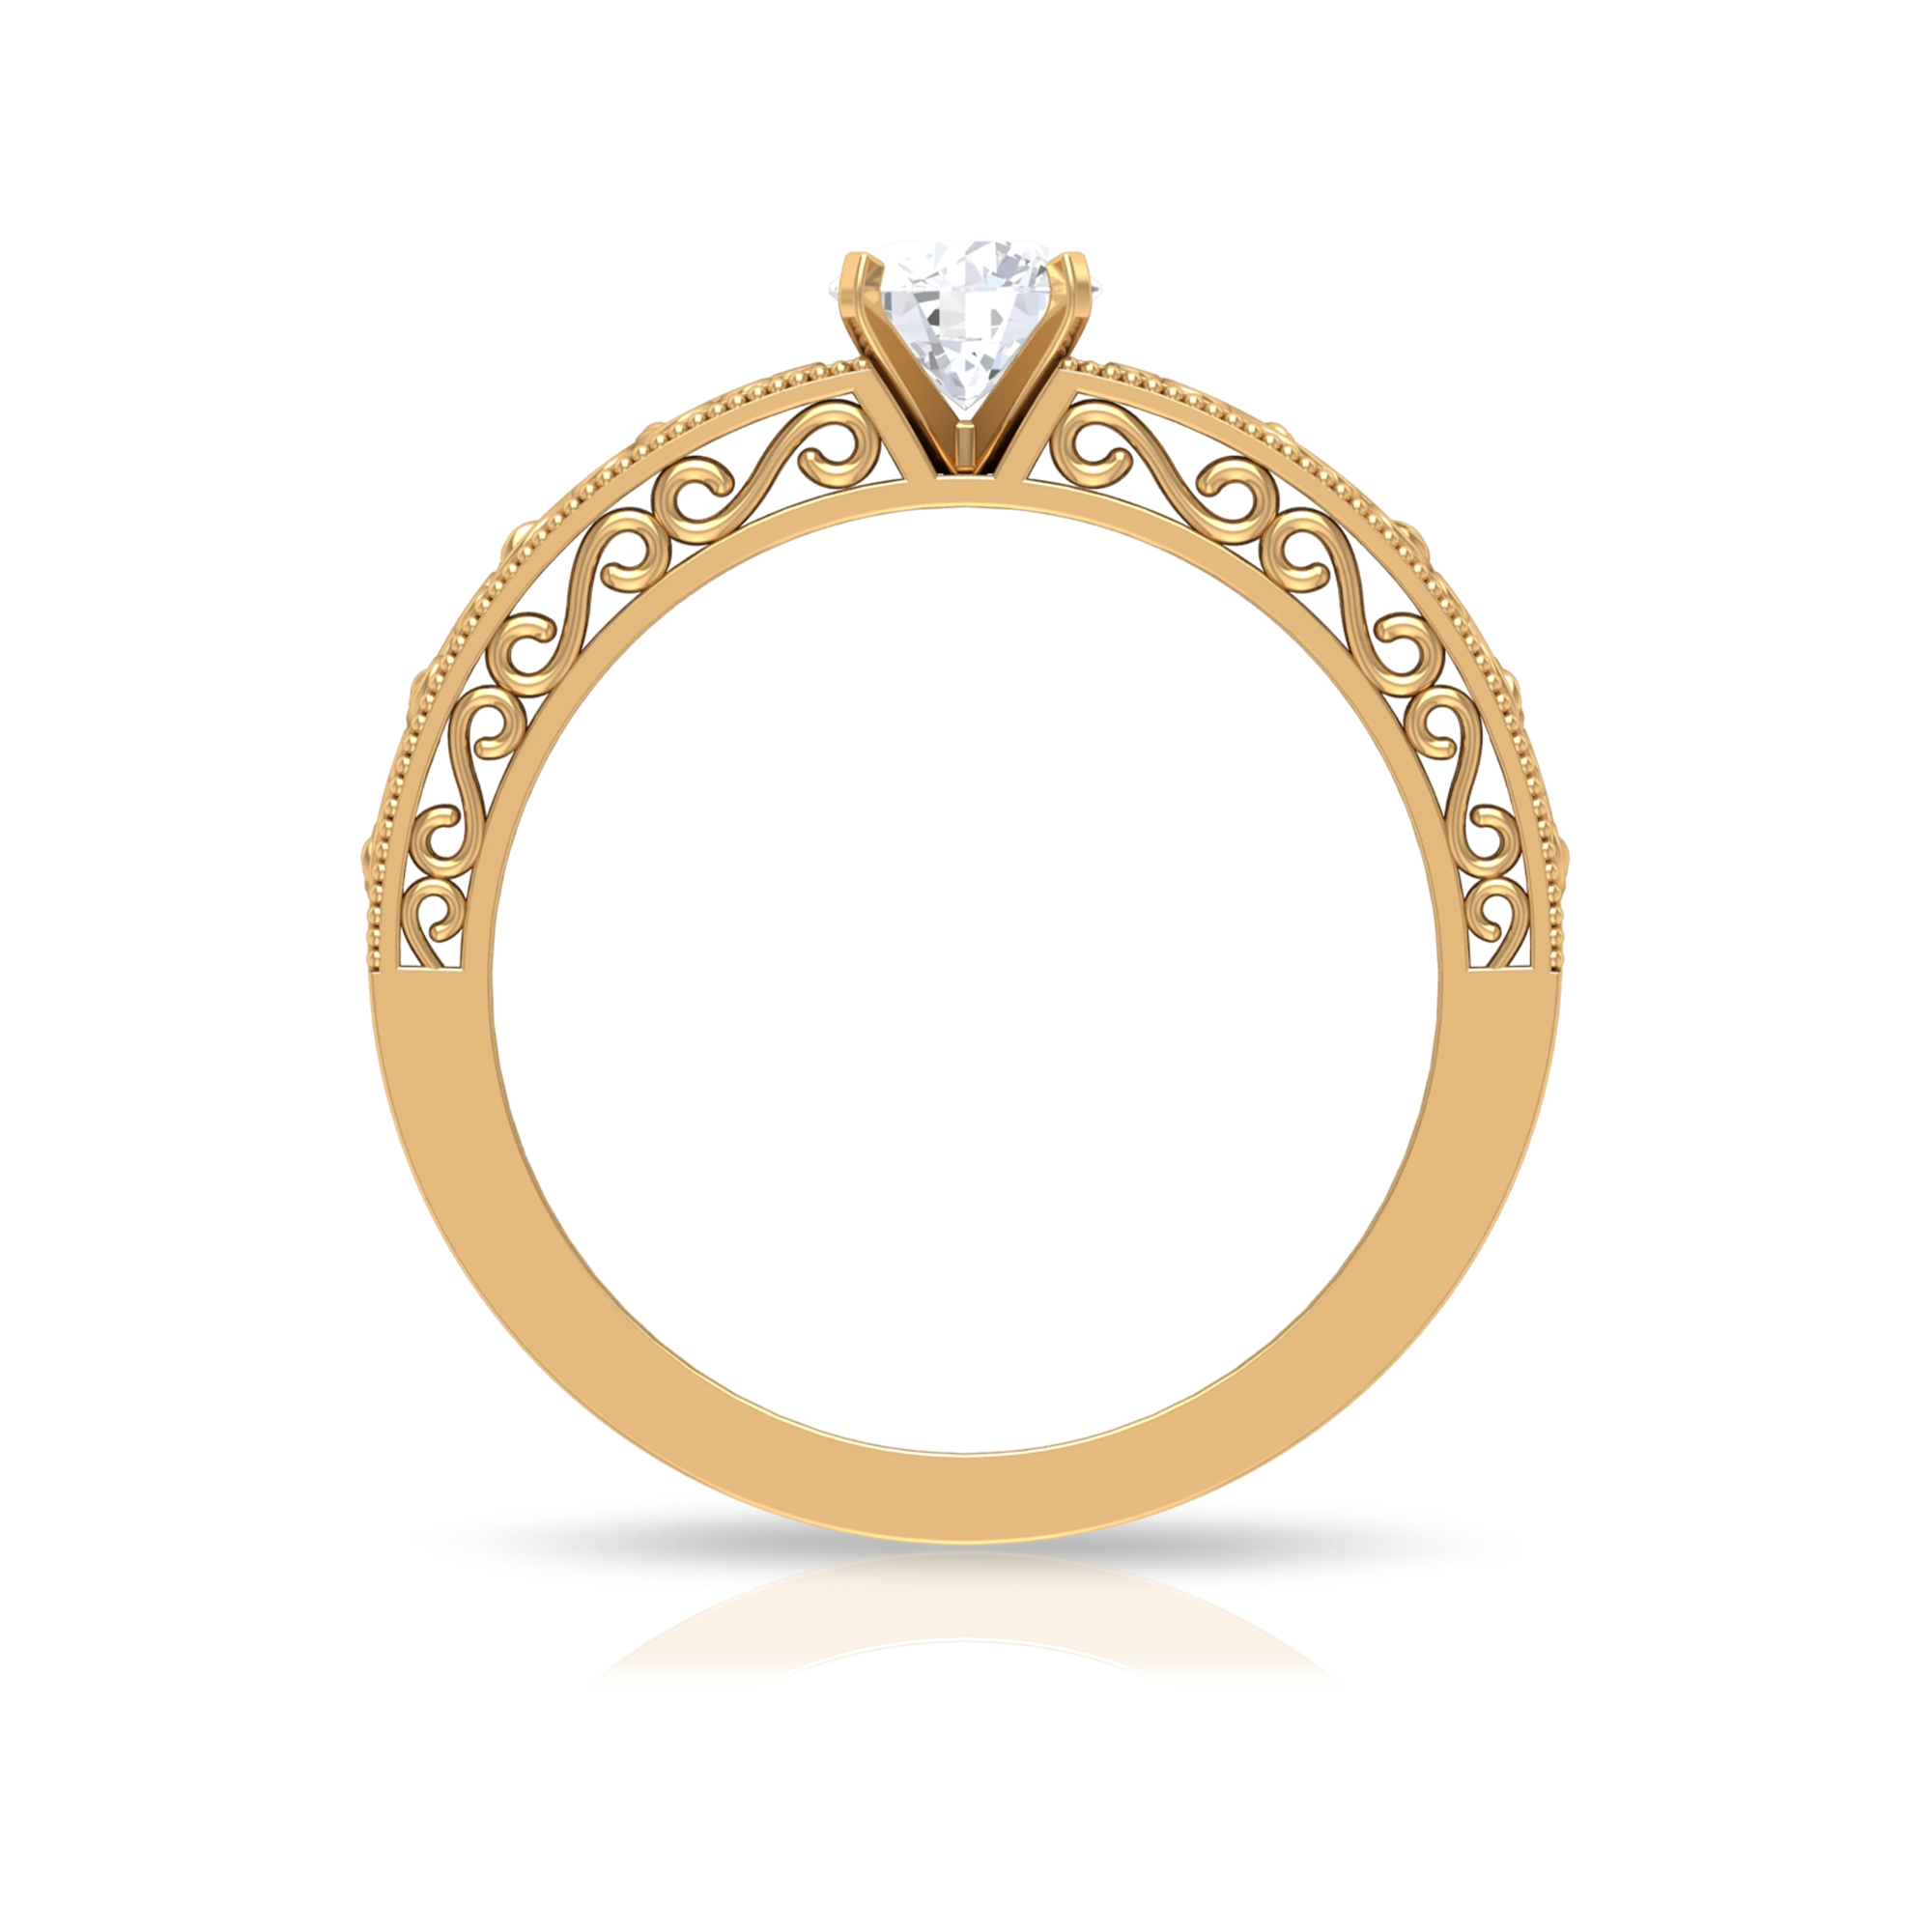 5 MM Square Prong Set Round Cut Solitaire Diamond Filigree Ring